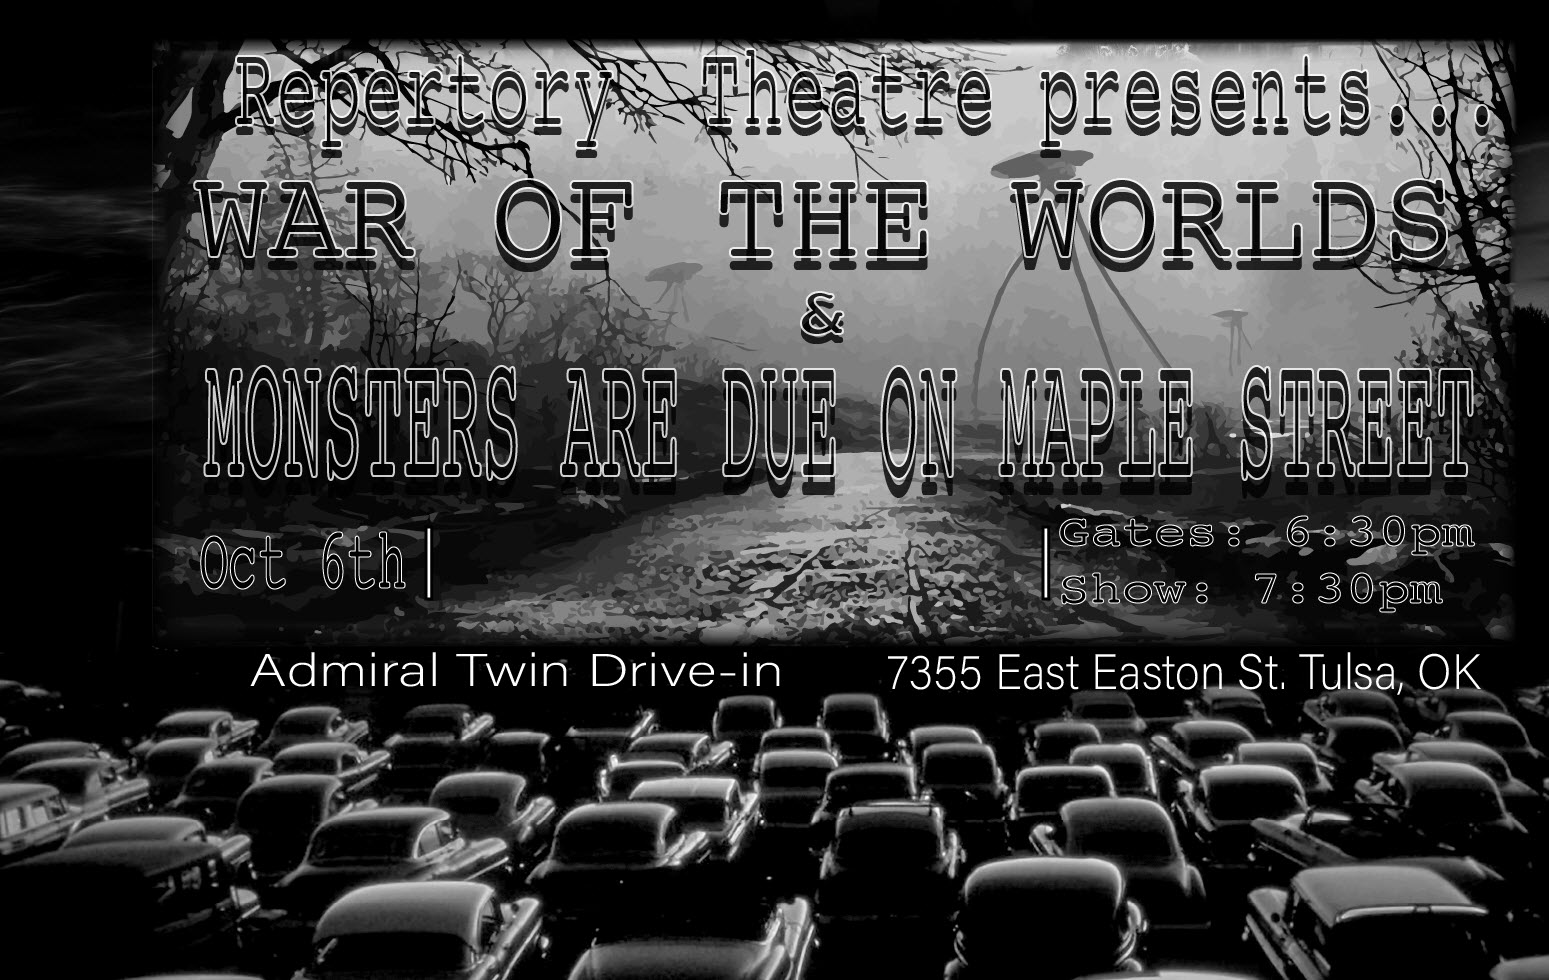 "Union High School Repertory Theatre to present a double-feature show at Admiral Twin Drive-In Tuesday, Oct. 6  For the first time, the Union High School Repertory Theatre will present a double feature show at the Admiral Twin Drive-in, 7355 E. Easton St., on Tuesday, Oct. 6, featuring performances of ""War of the Worlds"" and ""Monsters Are Due on Maple Street.""  Gates will open at 6:30 p.m. and the movie will start at 7:30 p.m. Tickets are $5 for each person (not for the entire vehicle).  Union High School Repertory Theatre to present a double-feature show at Admiral Twin Drive-In Tuesday, Oct. 6  excited to record 'War of the Worlds' and 'Monsters are Due on Maple Street' to bring it to the Admiral Twin Drive in so that our audience can socially distance in their cars and still see their children perform,"" said Troy Powell, drama instructor at the High School.  Union's ""War of the Worlds"" will be a retelling of the famous 1938 radio drama that created some real-life panic when members of the public thought the alien invasion was real. ""The Monster are Due on Maple Street"" is a retelling of a famous 1960 ""Twilight Zone"" episode in which neighbors react to a mysterious power outage some believe to be caused by a meteor or maybe even aliens.  So expect a lot of fun with some A-movies by some A-list Union actors!"